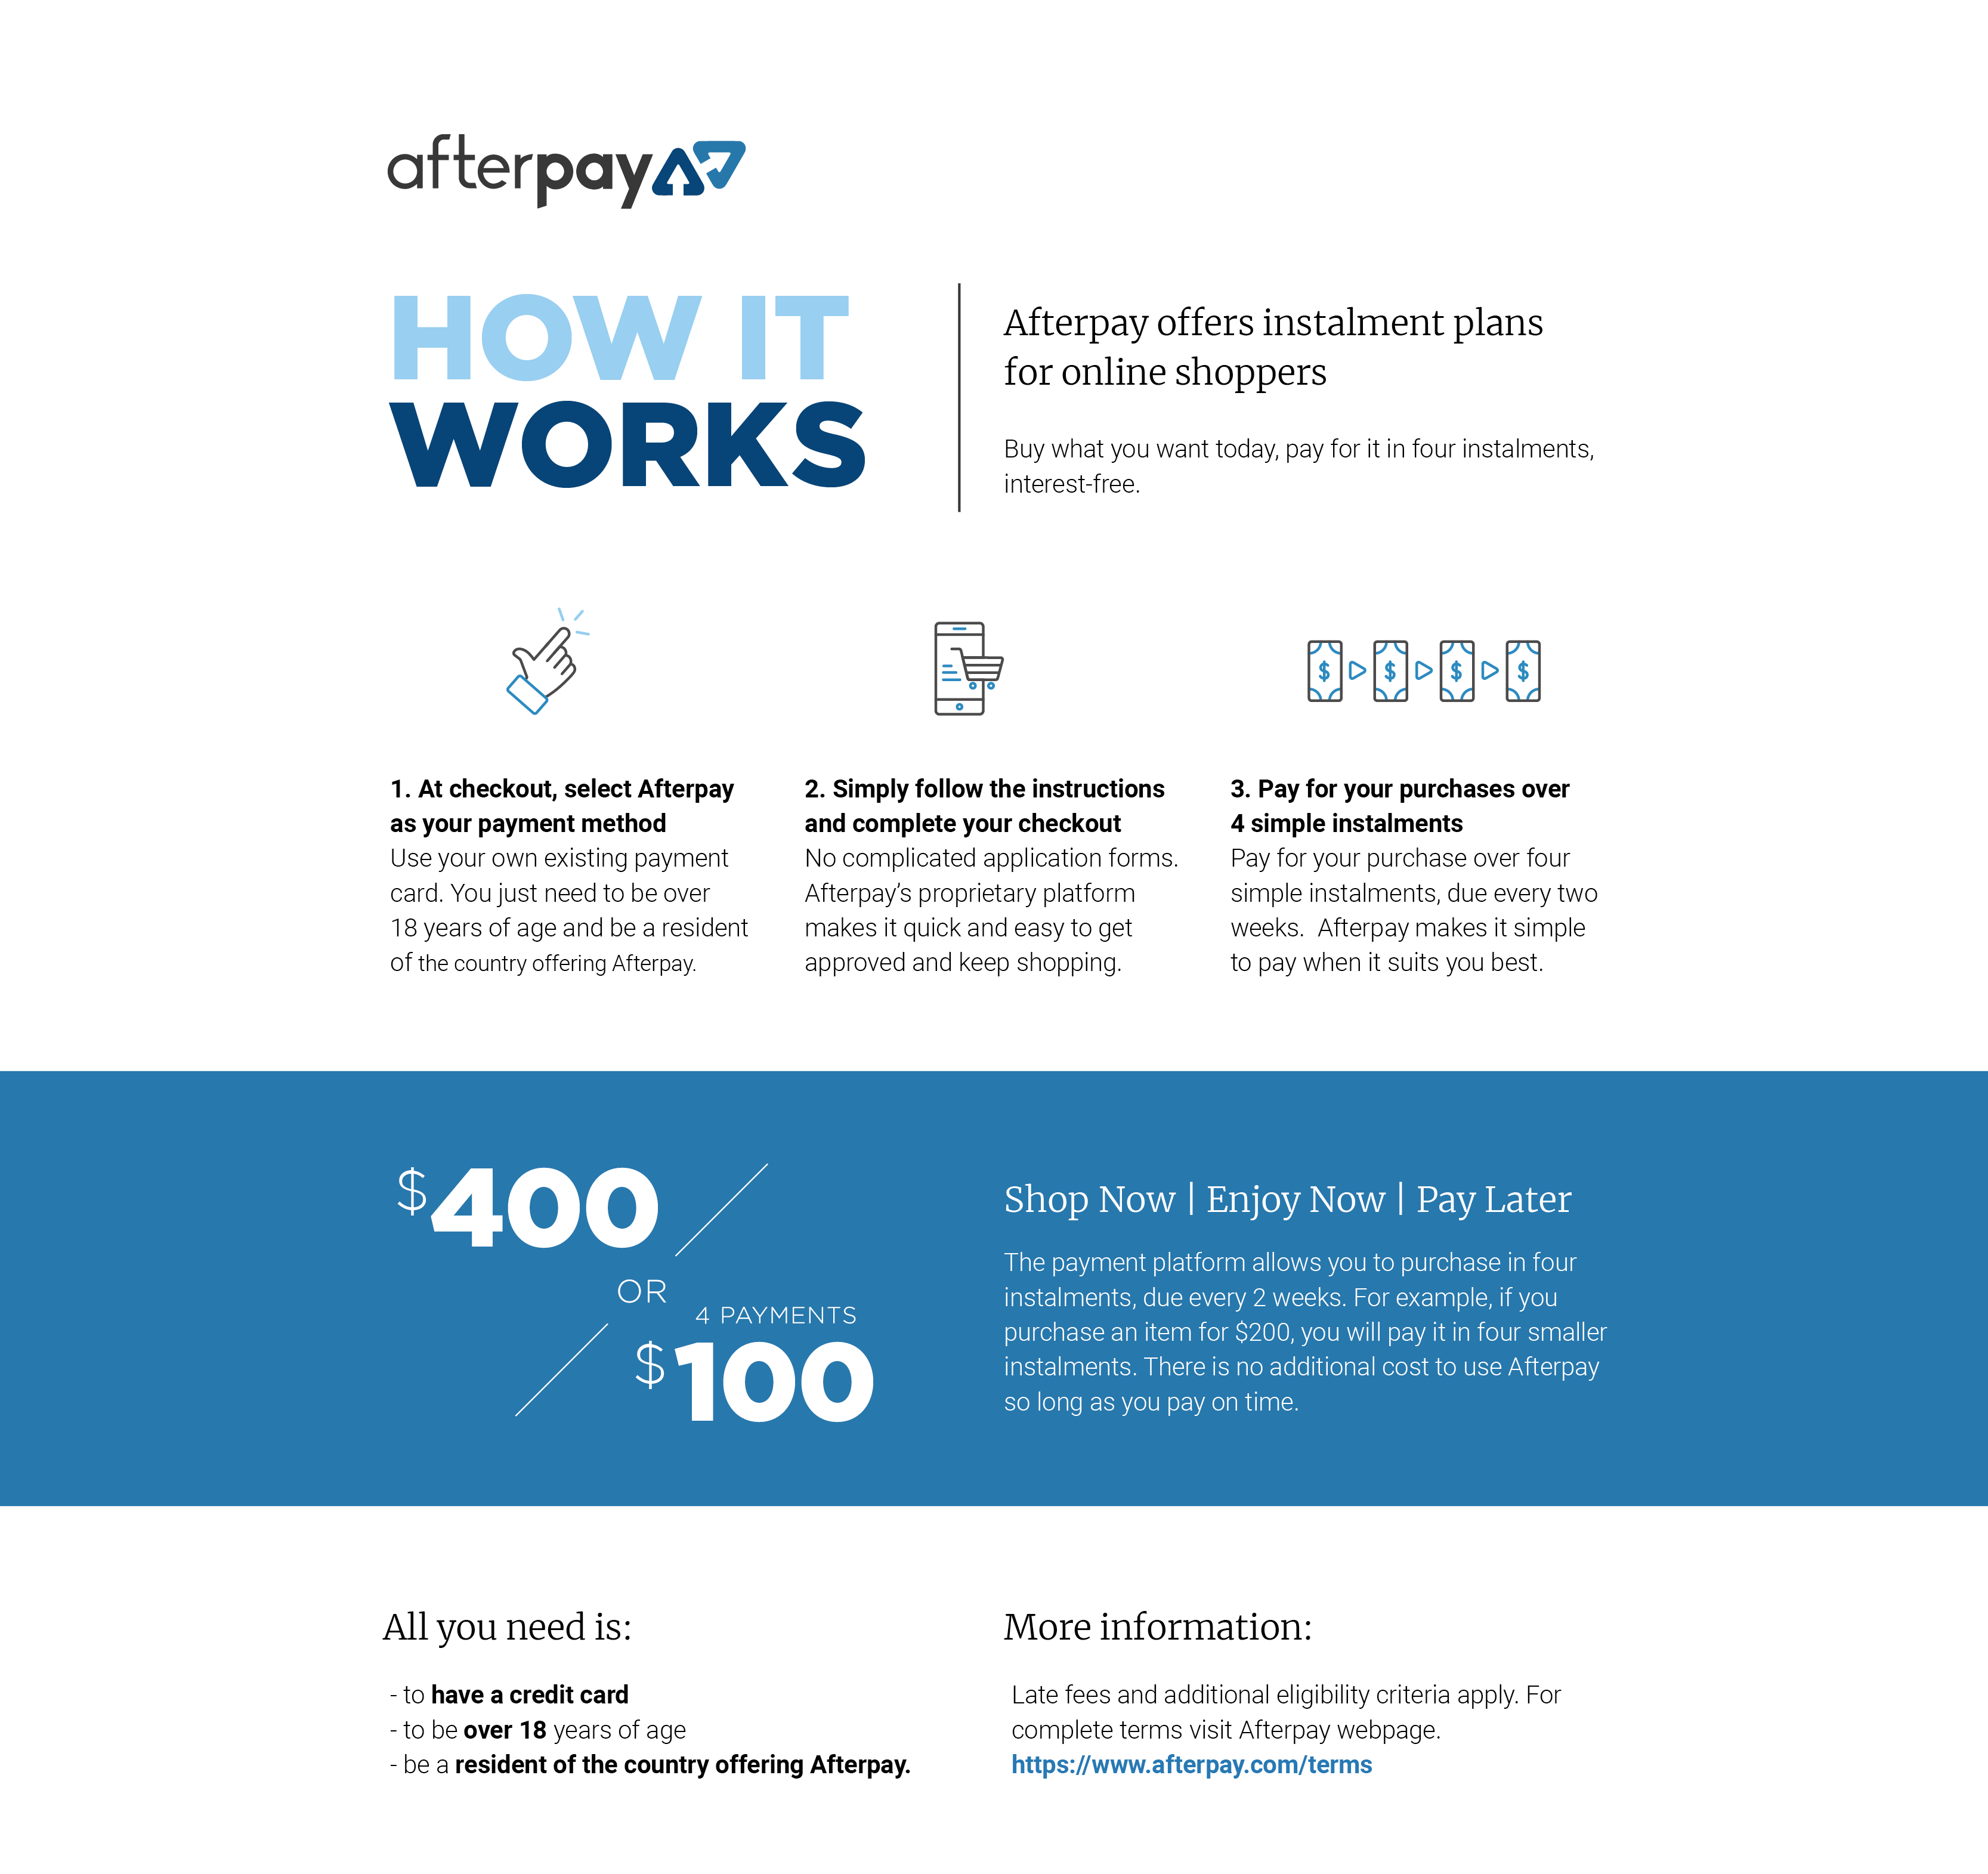 afterpay-how-it-works-landing-page-online.png